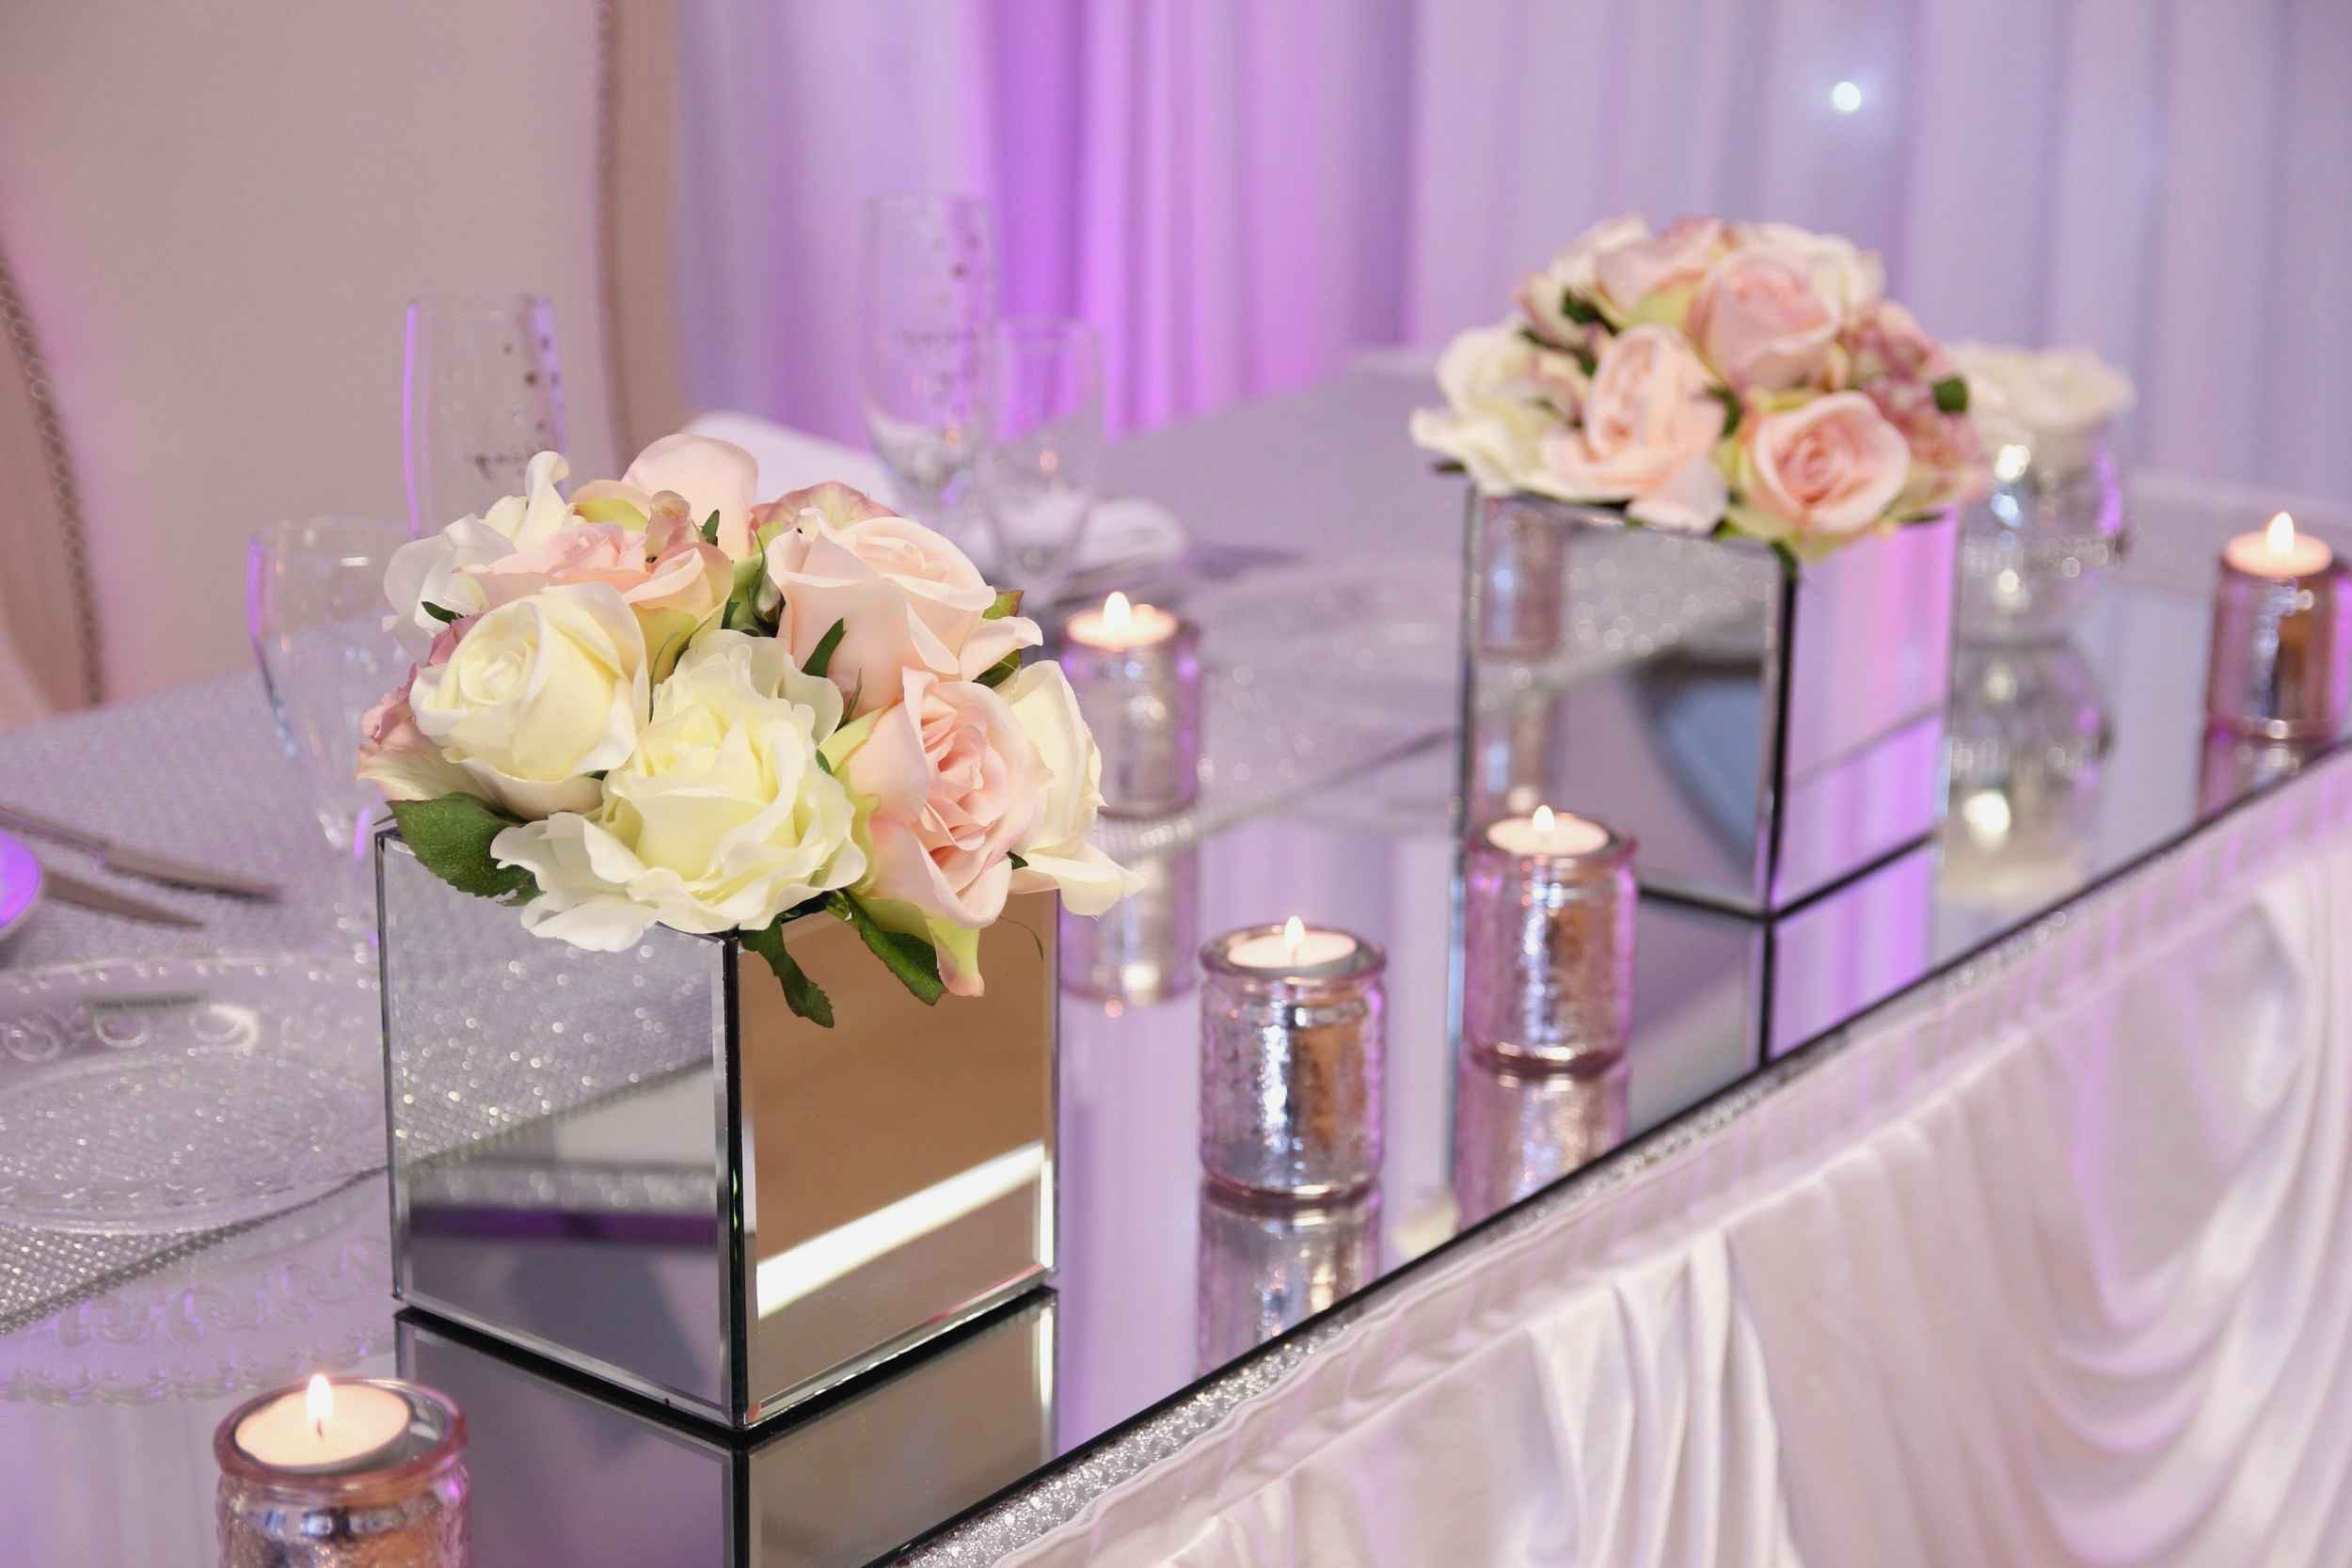 african violet vases of amazing purple and silver wedding ideas wedding theme intended for purple and lavender wedding decorations best mirror vase 8 1h vases mirrored square cube riser inch